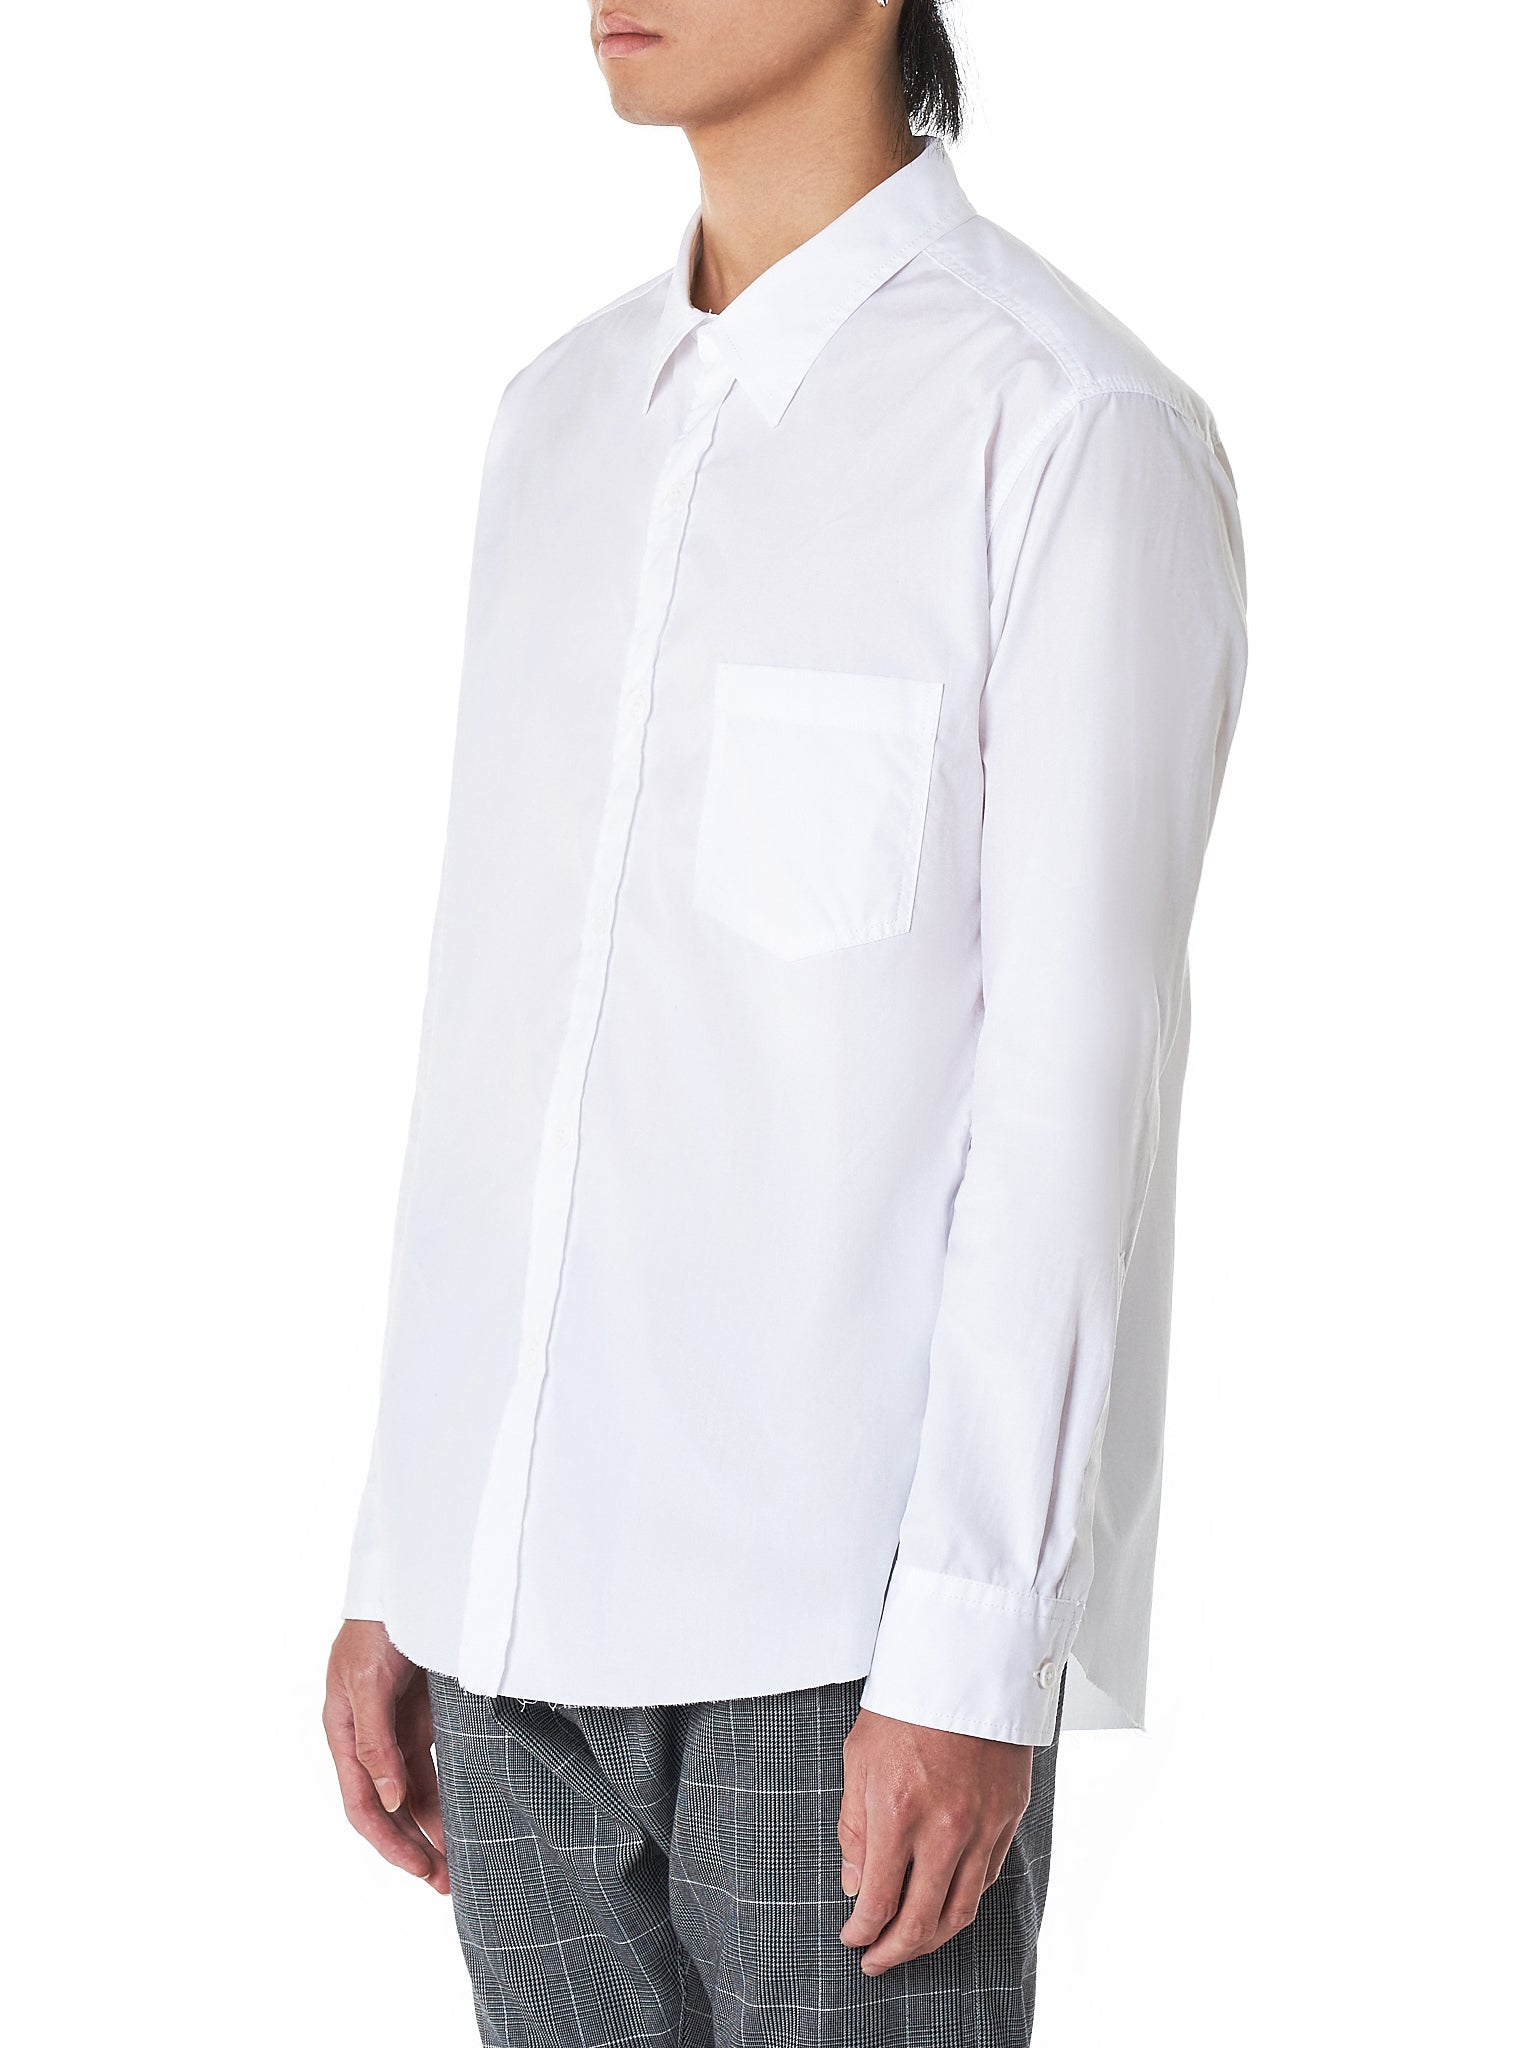 Sulvam Shirt - Hlorenzo Side